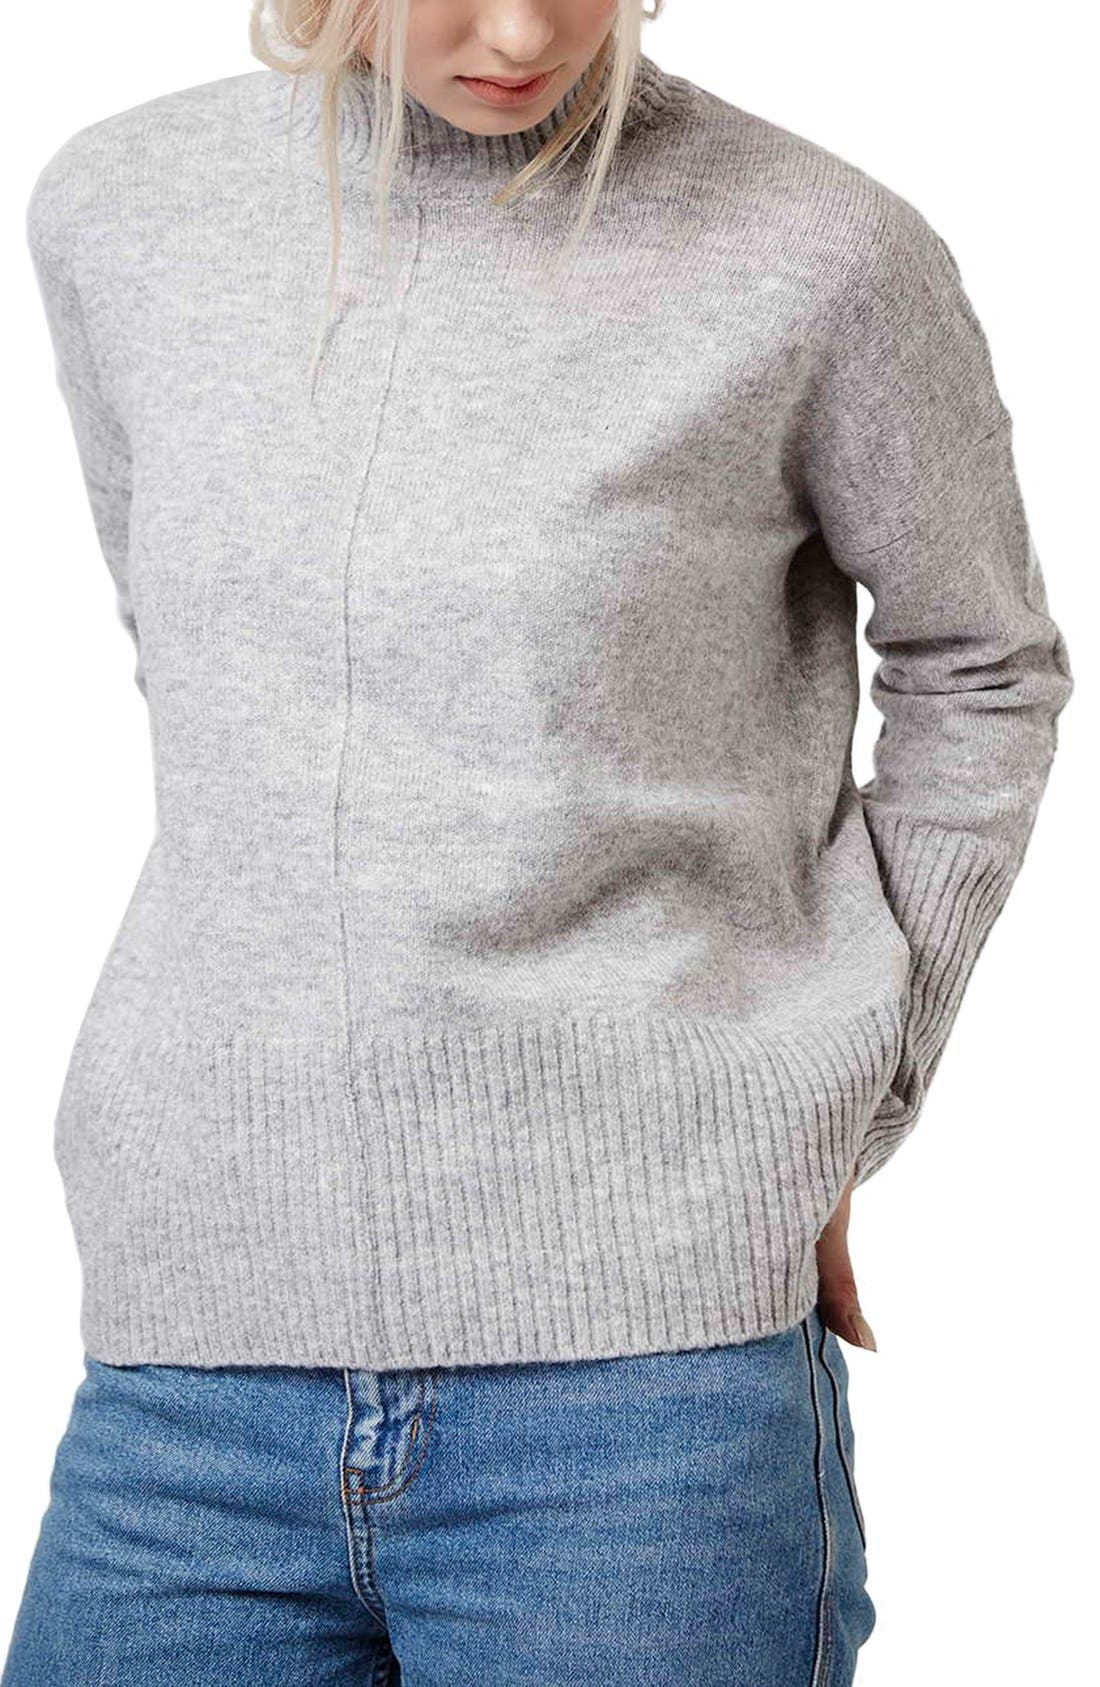 Alternate Image 1 Selected - Topshop Oversize Funnel Neck Sweater